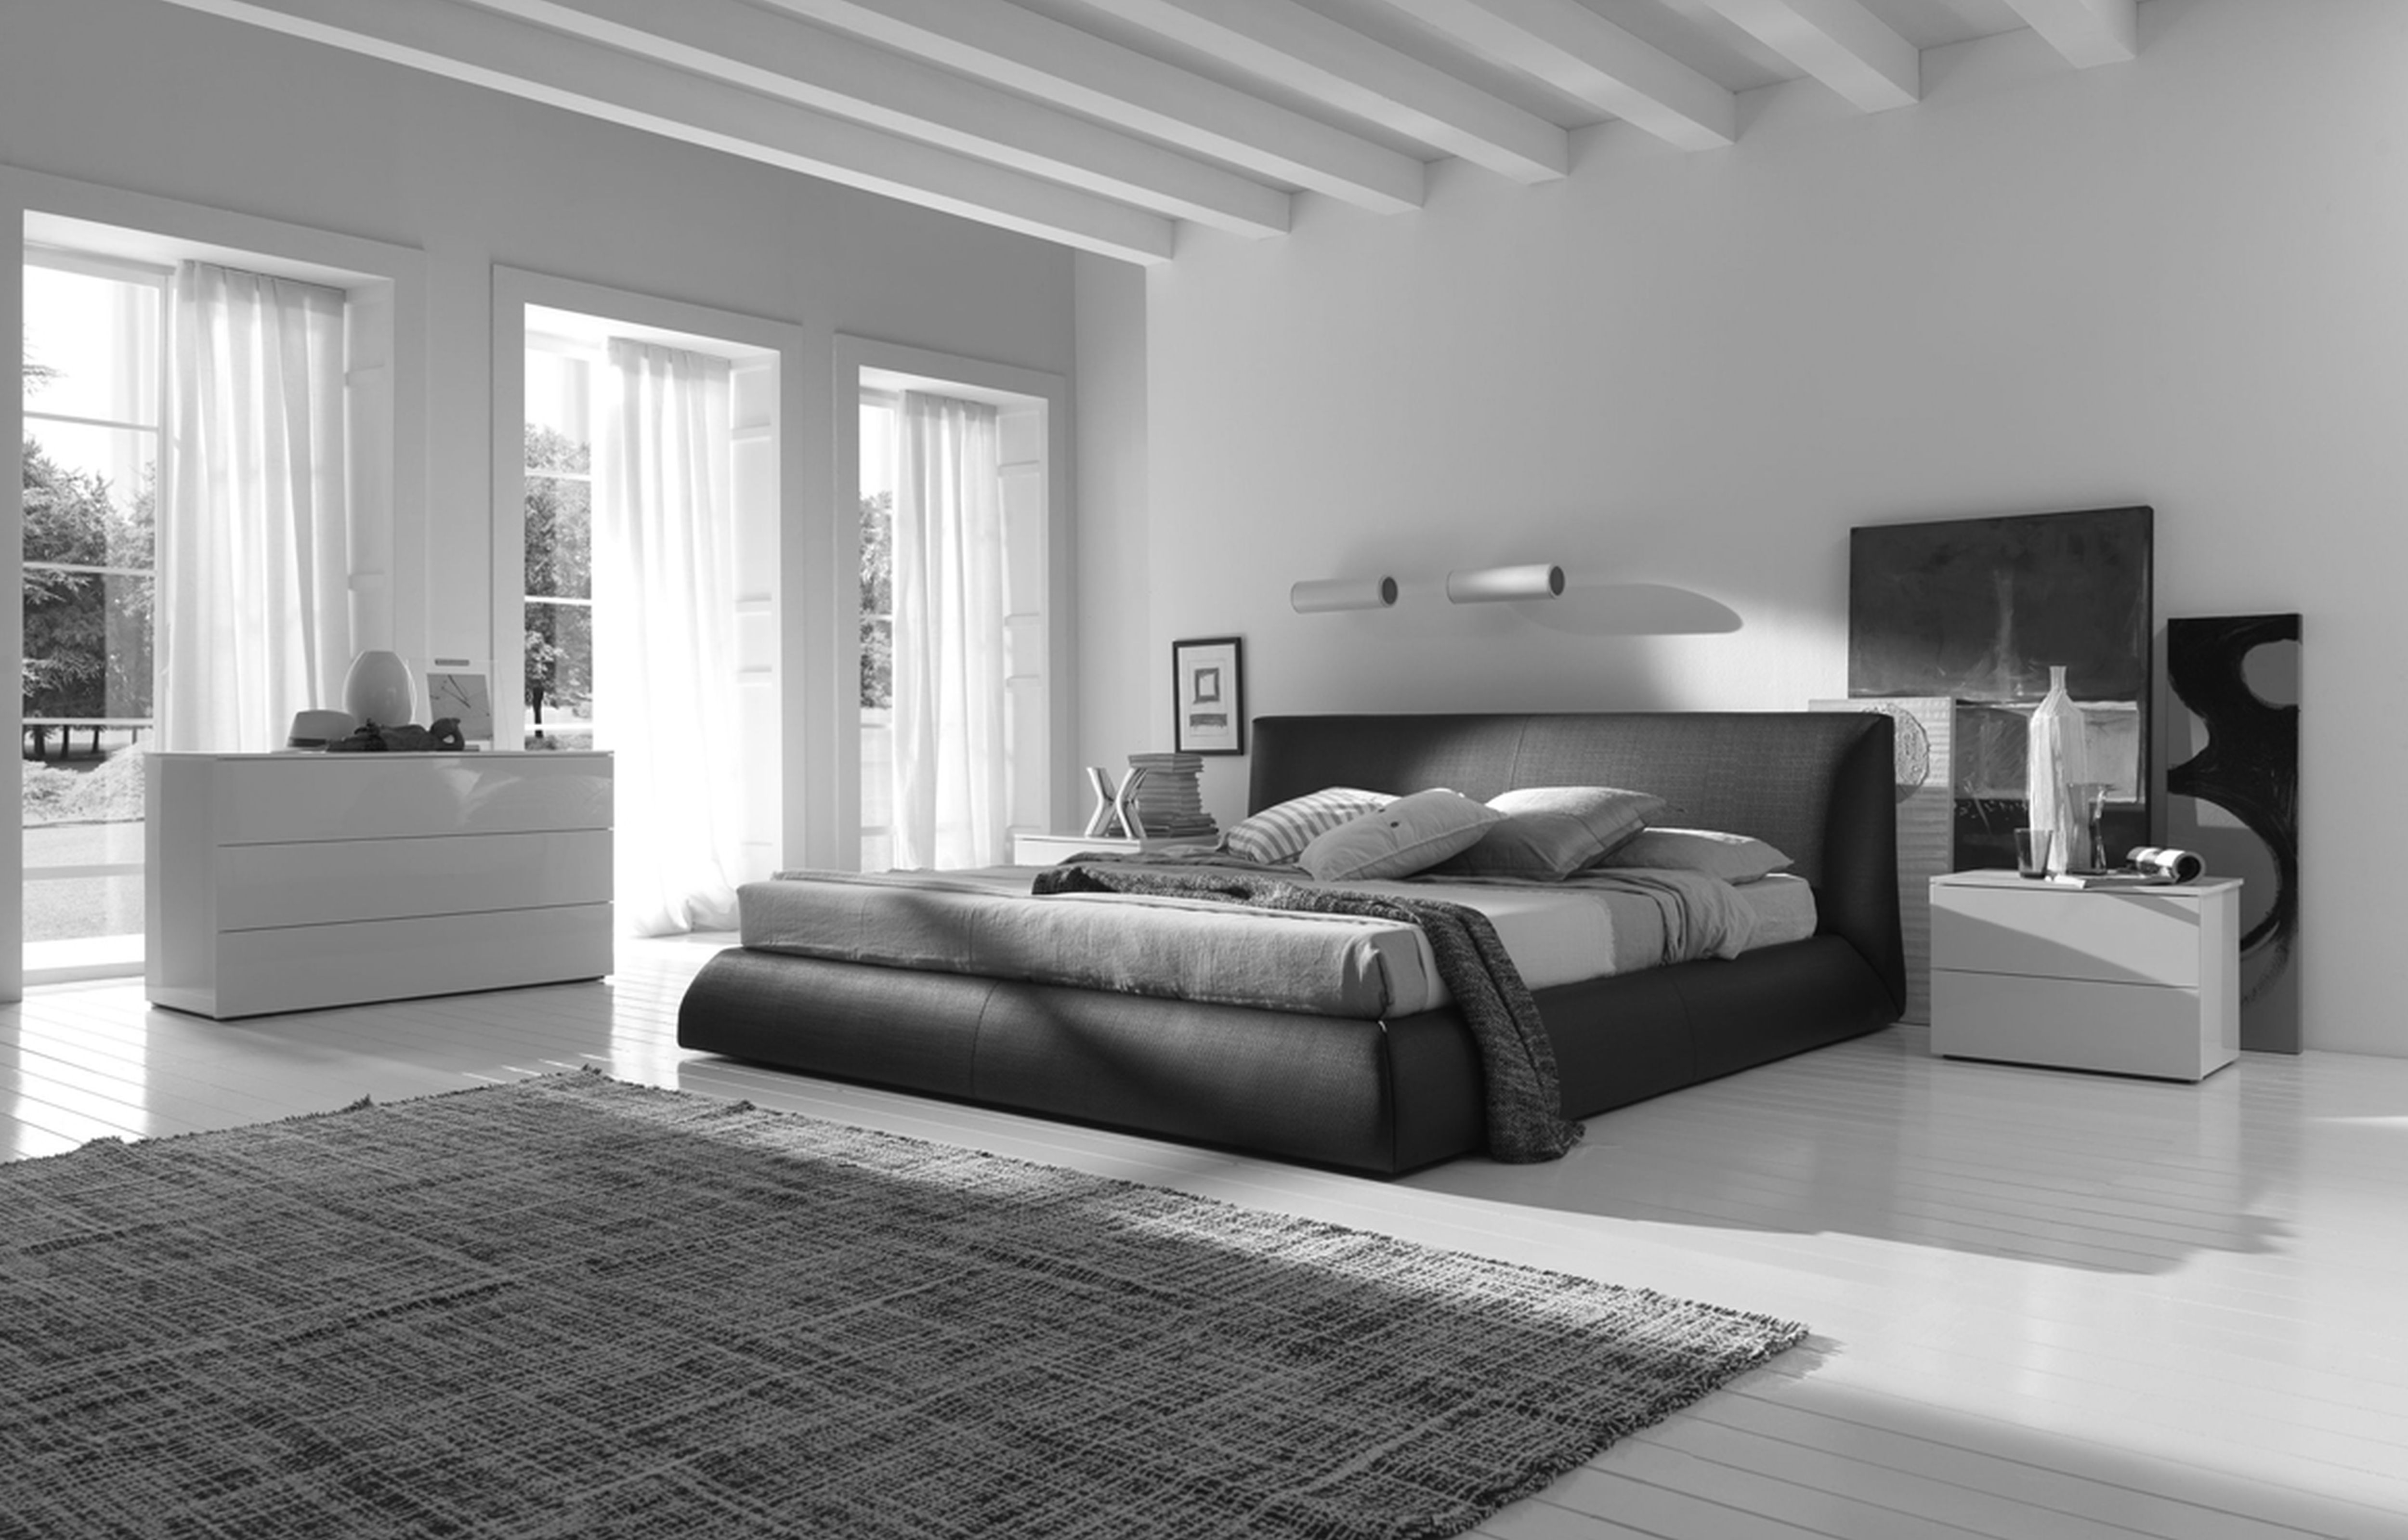 Pretentious Idea Modern Style Bedroom In The Design 2017 And pertaining to Modern Bedroom Styles